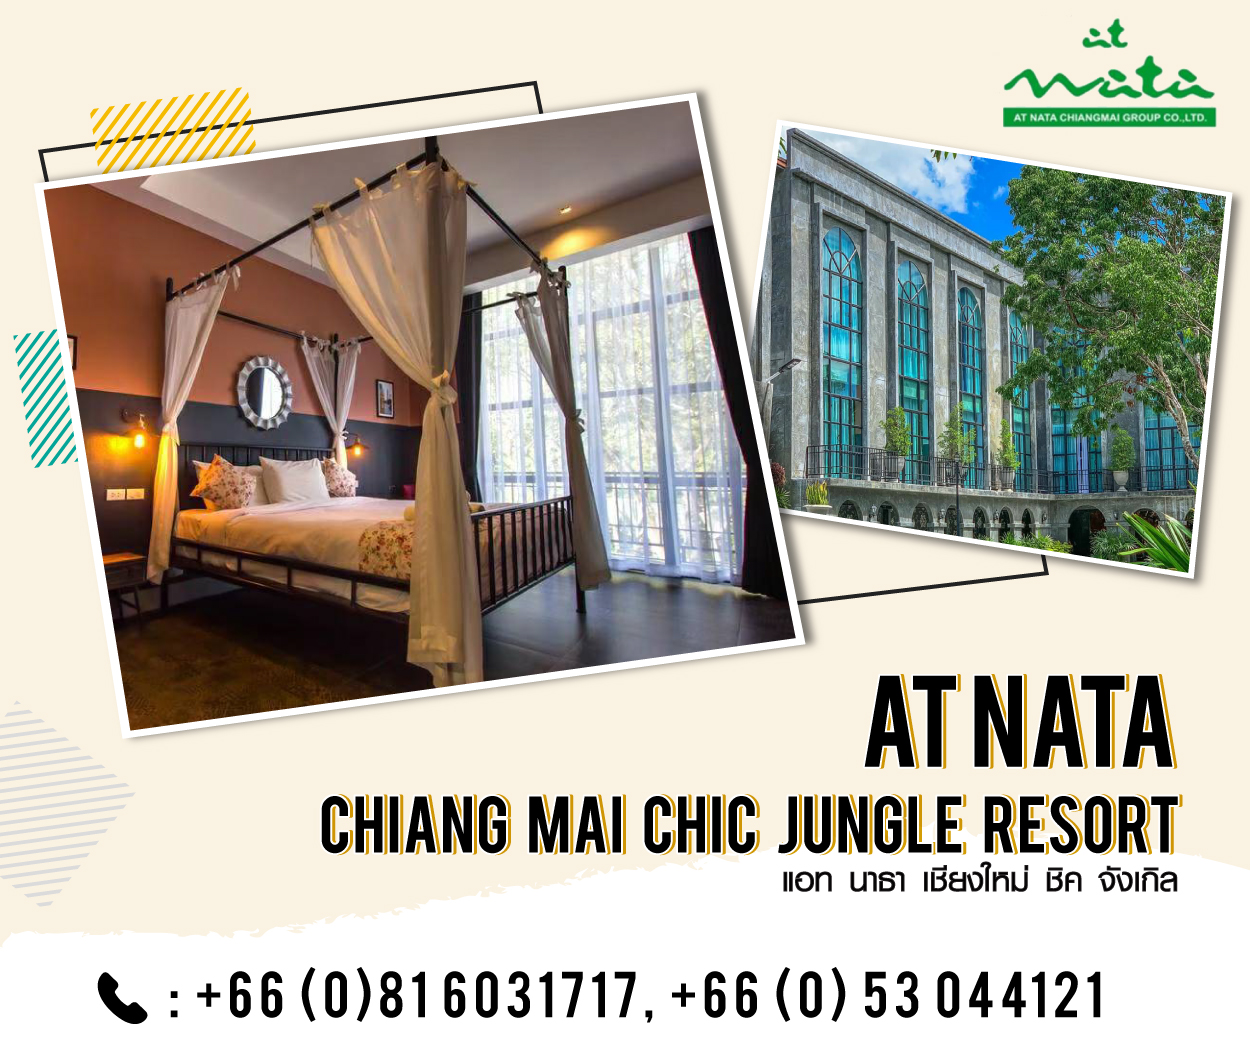 At Nata Chiangmai Chic Jungle Resort